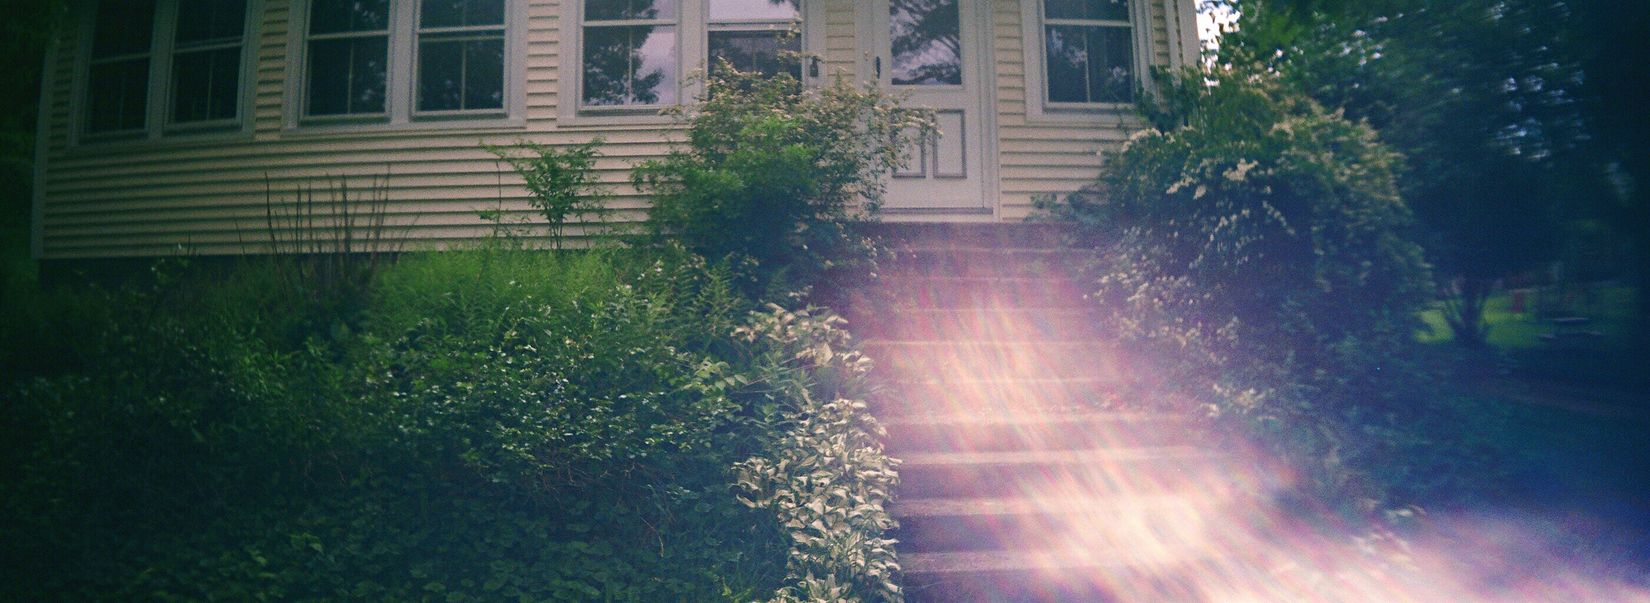 Architecture Building Exterior The Way Forward Koduckgirl Farmhouse Sprocket Rocket Panorama Film Country Life Country House Steps Sunlight